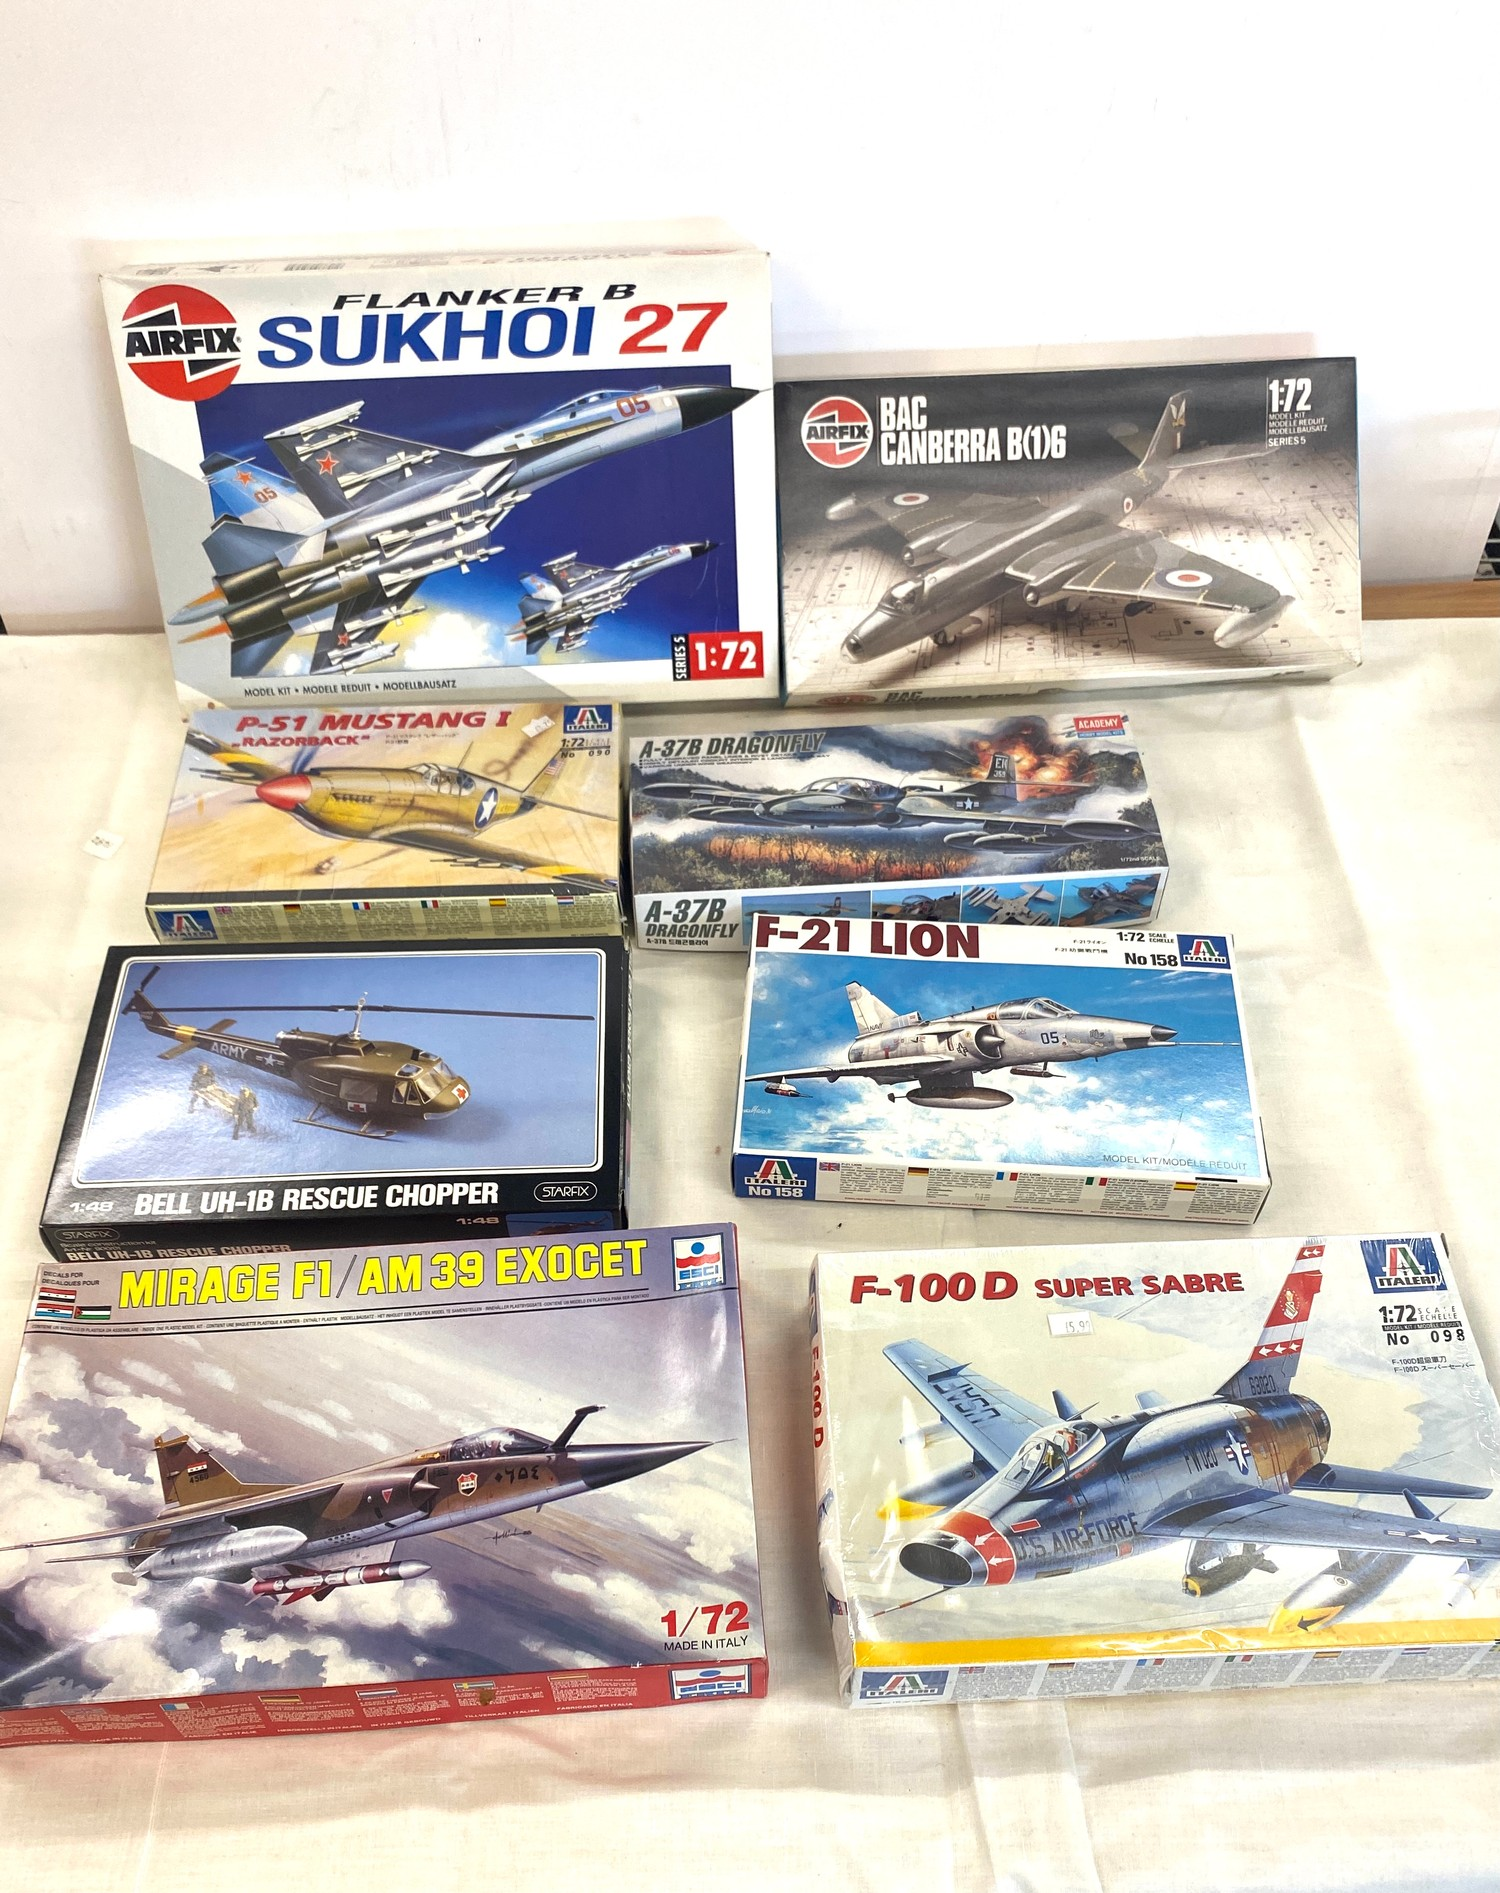 Selection of 8 boxed craft models to include, Airfix Sukhoi 27, Mirage F1, F-21 Lion, Bell vUH-1B